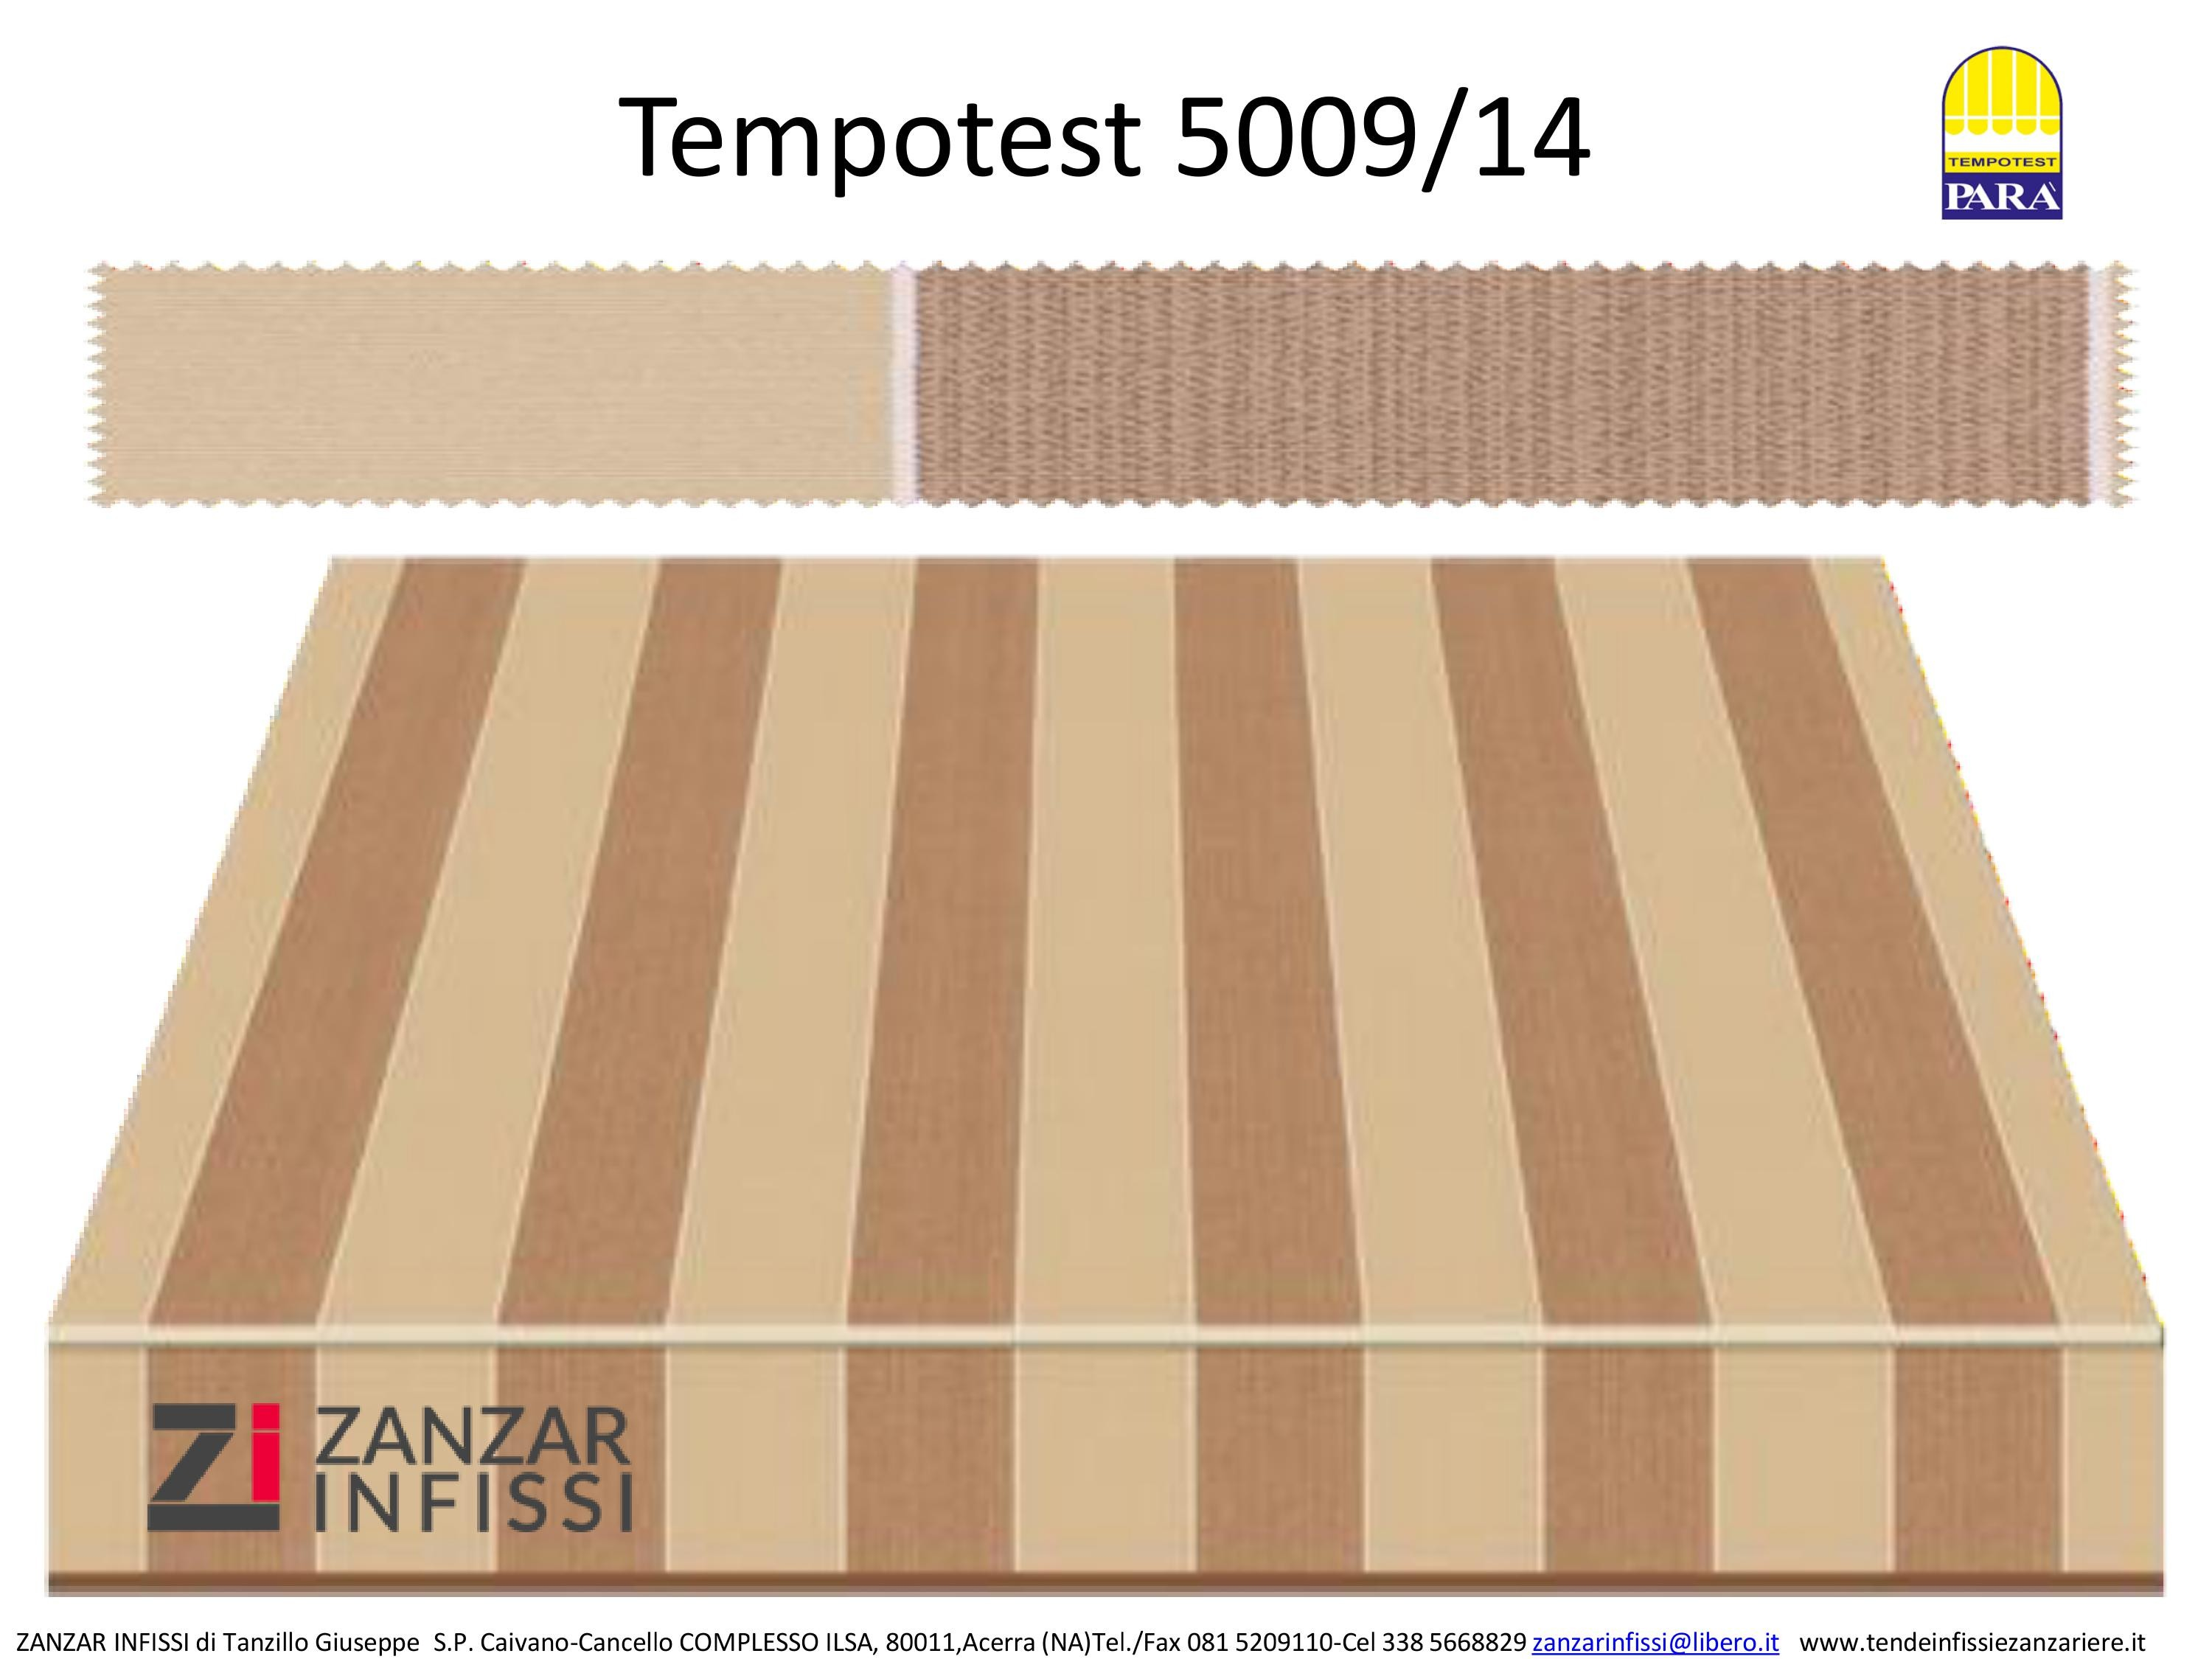 Tempotest 5009/14